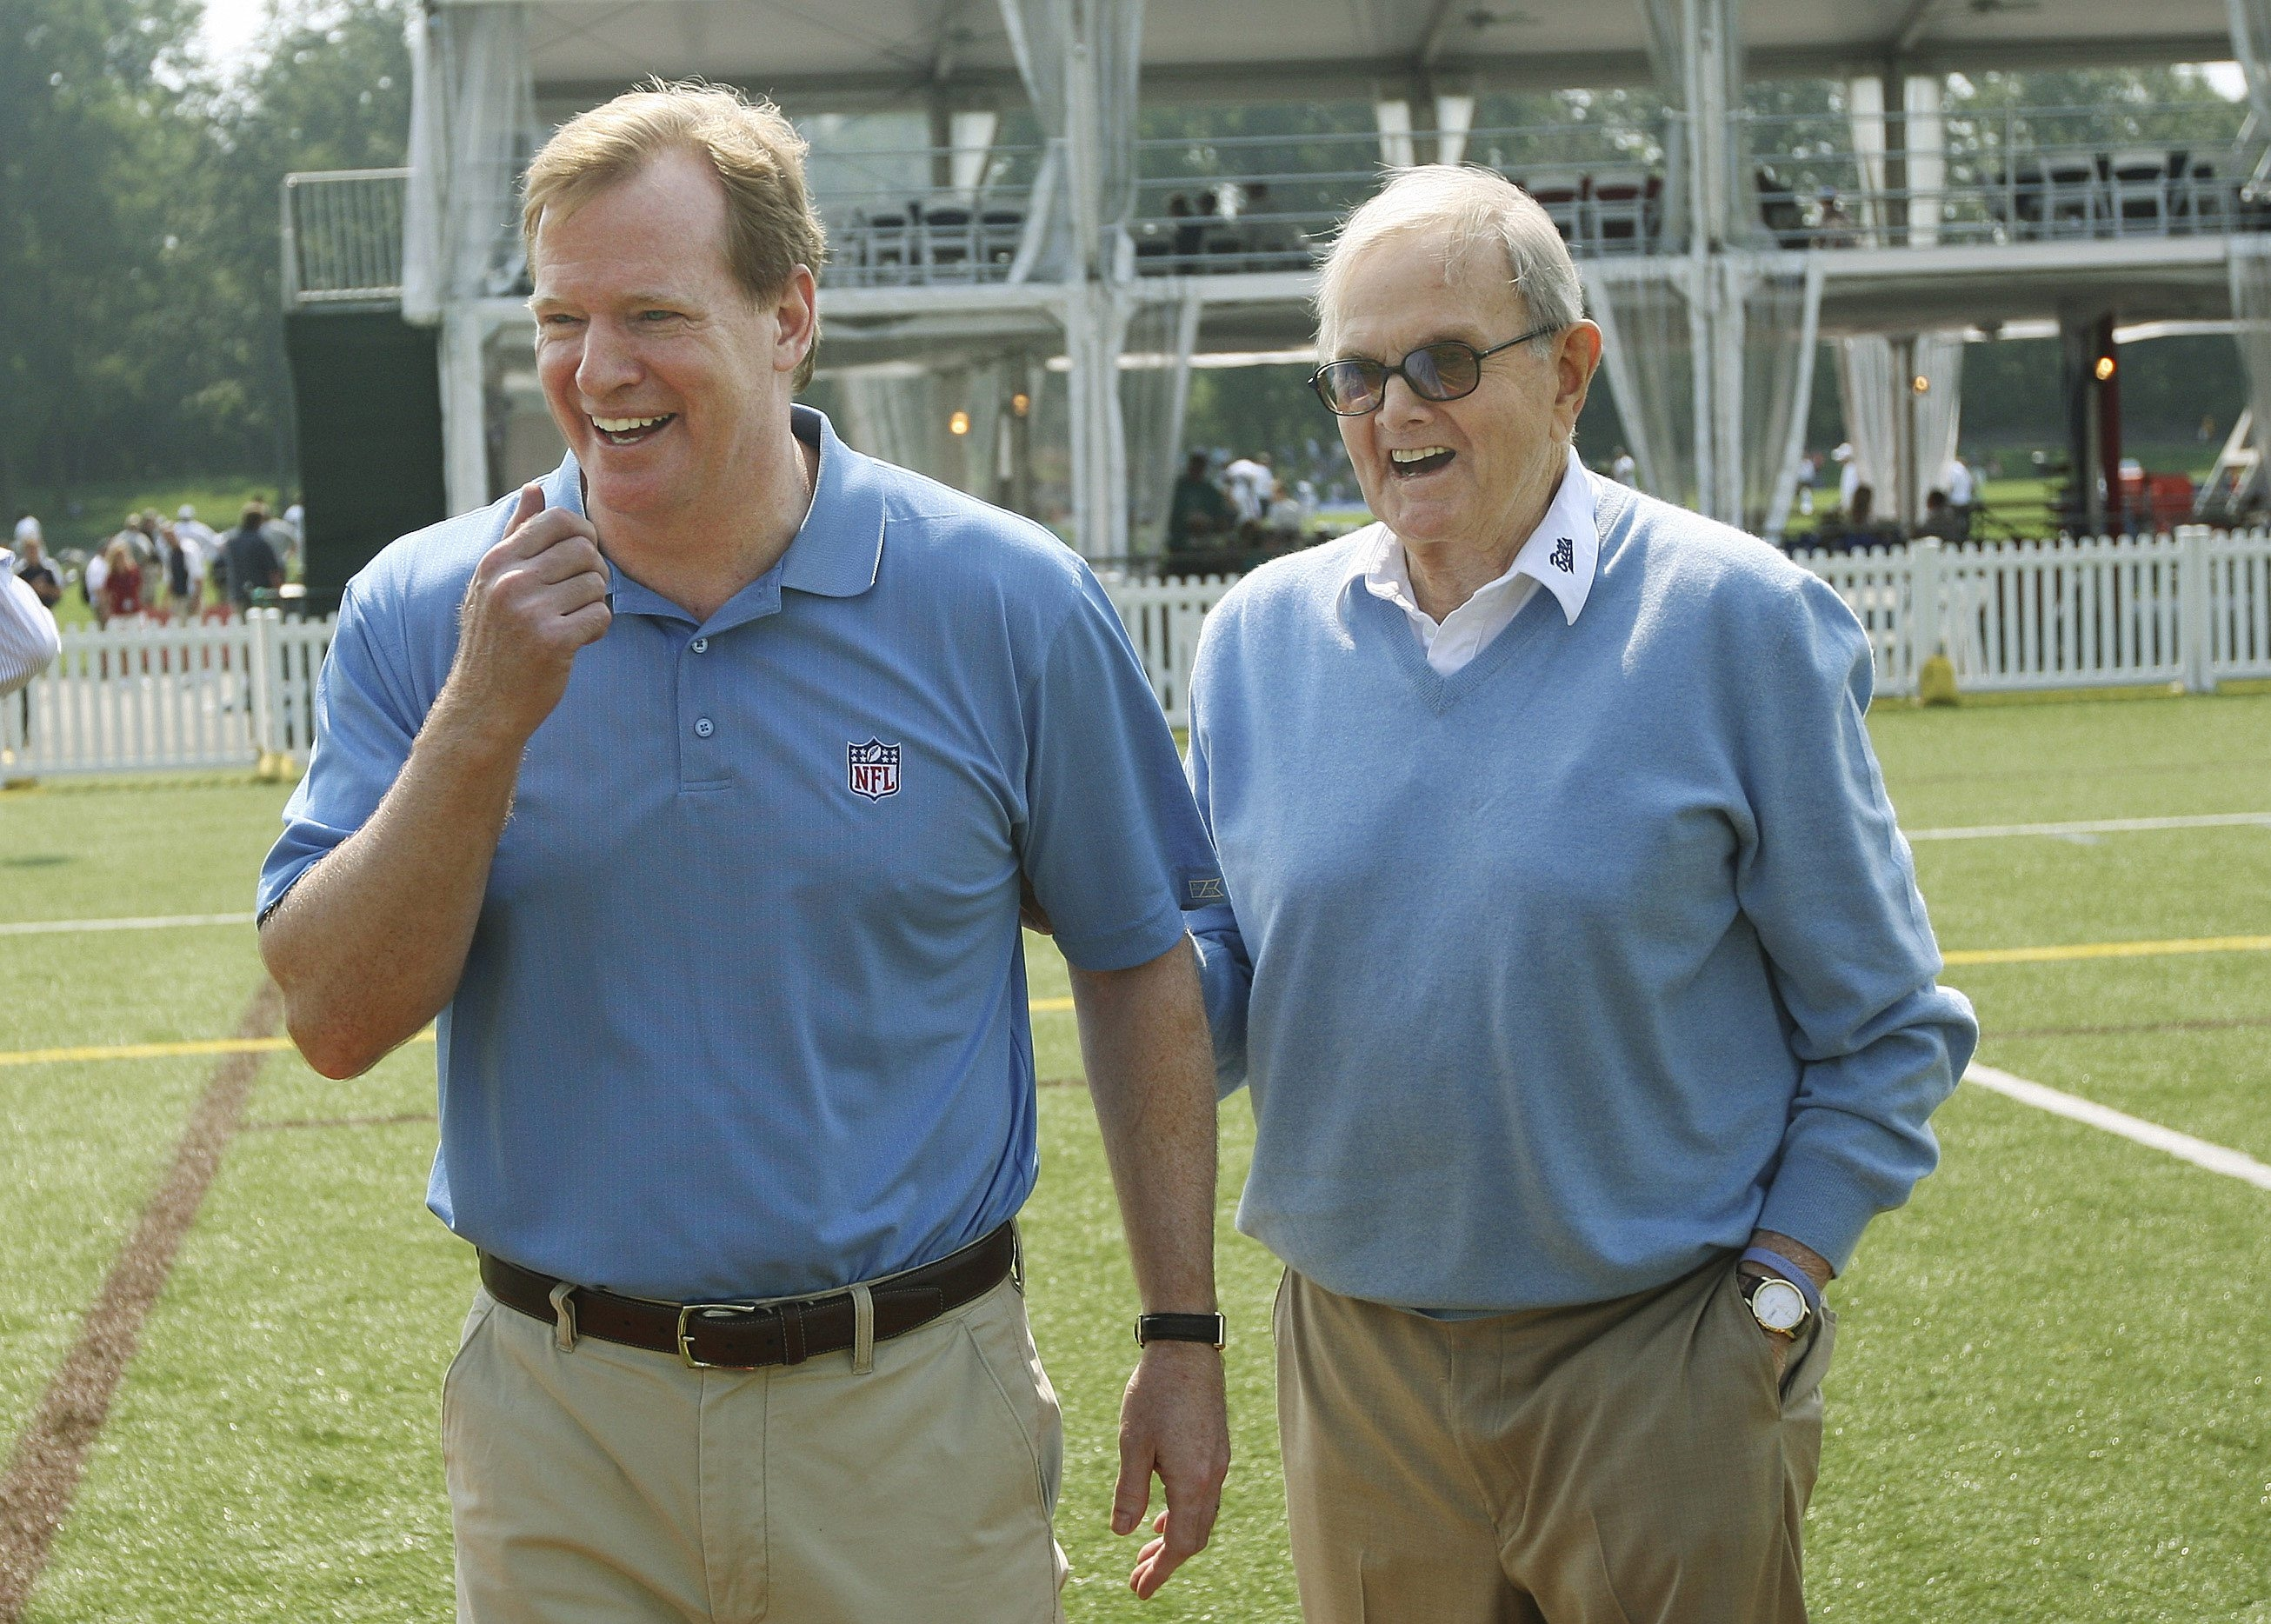 NFL Commissioner Roger Goodell,  left, would love to put a team back in Los Angeles, which lost the Rams and Raiders after the 1994 season. That worries Bills fans after the passing of owner Ralph C. Wilson Jr., right.